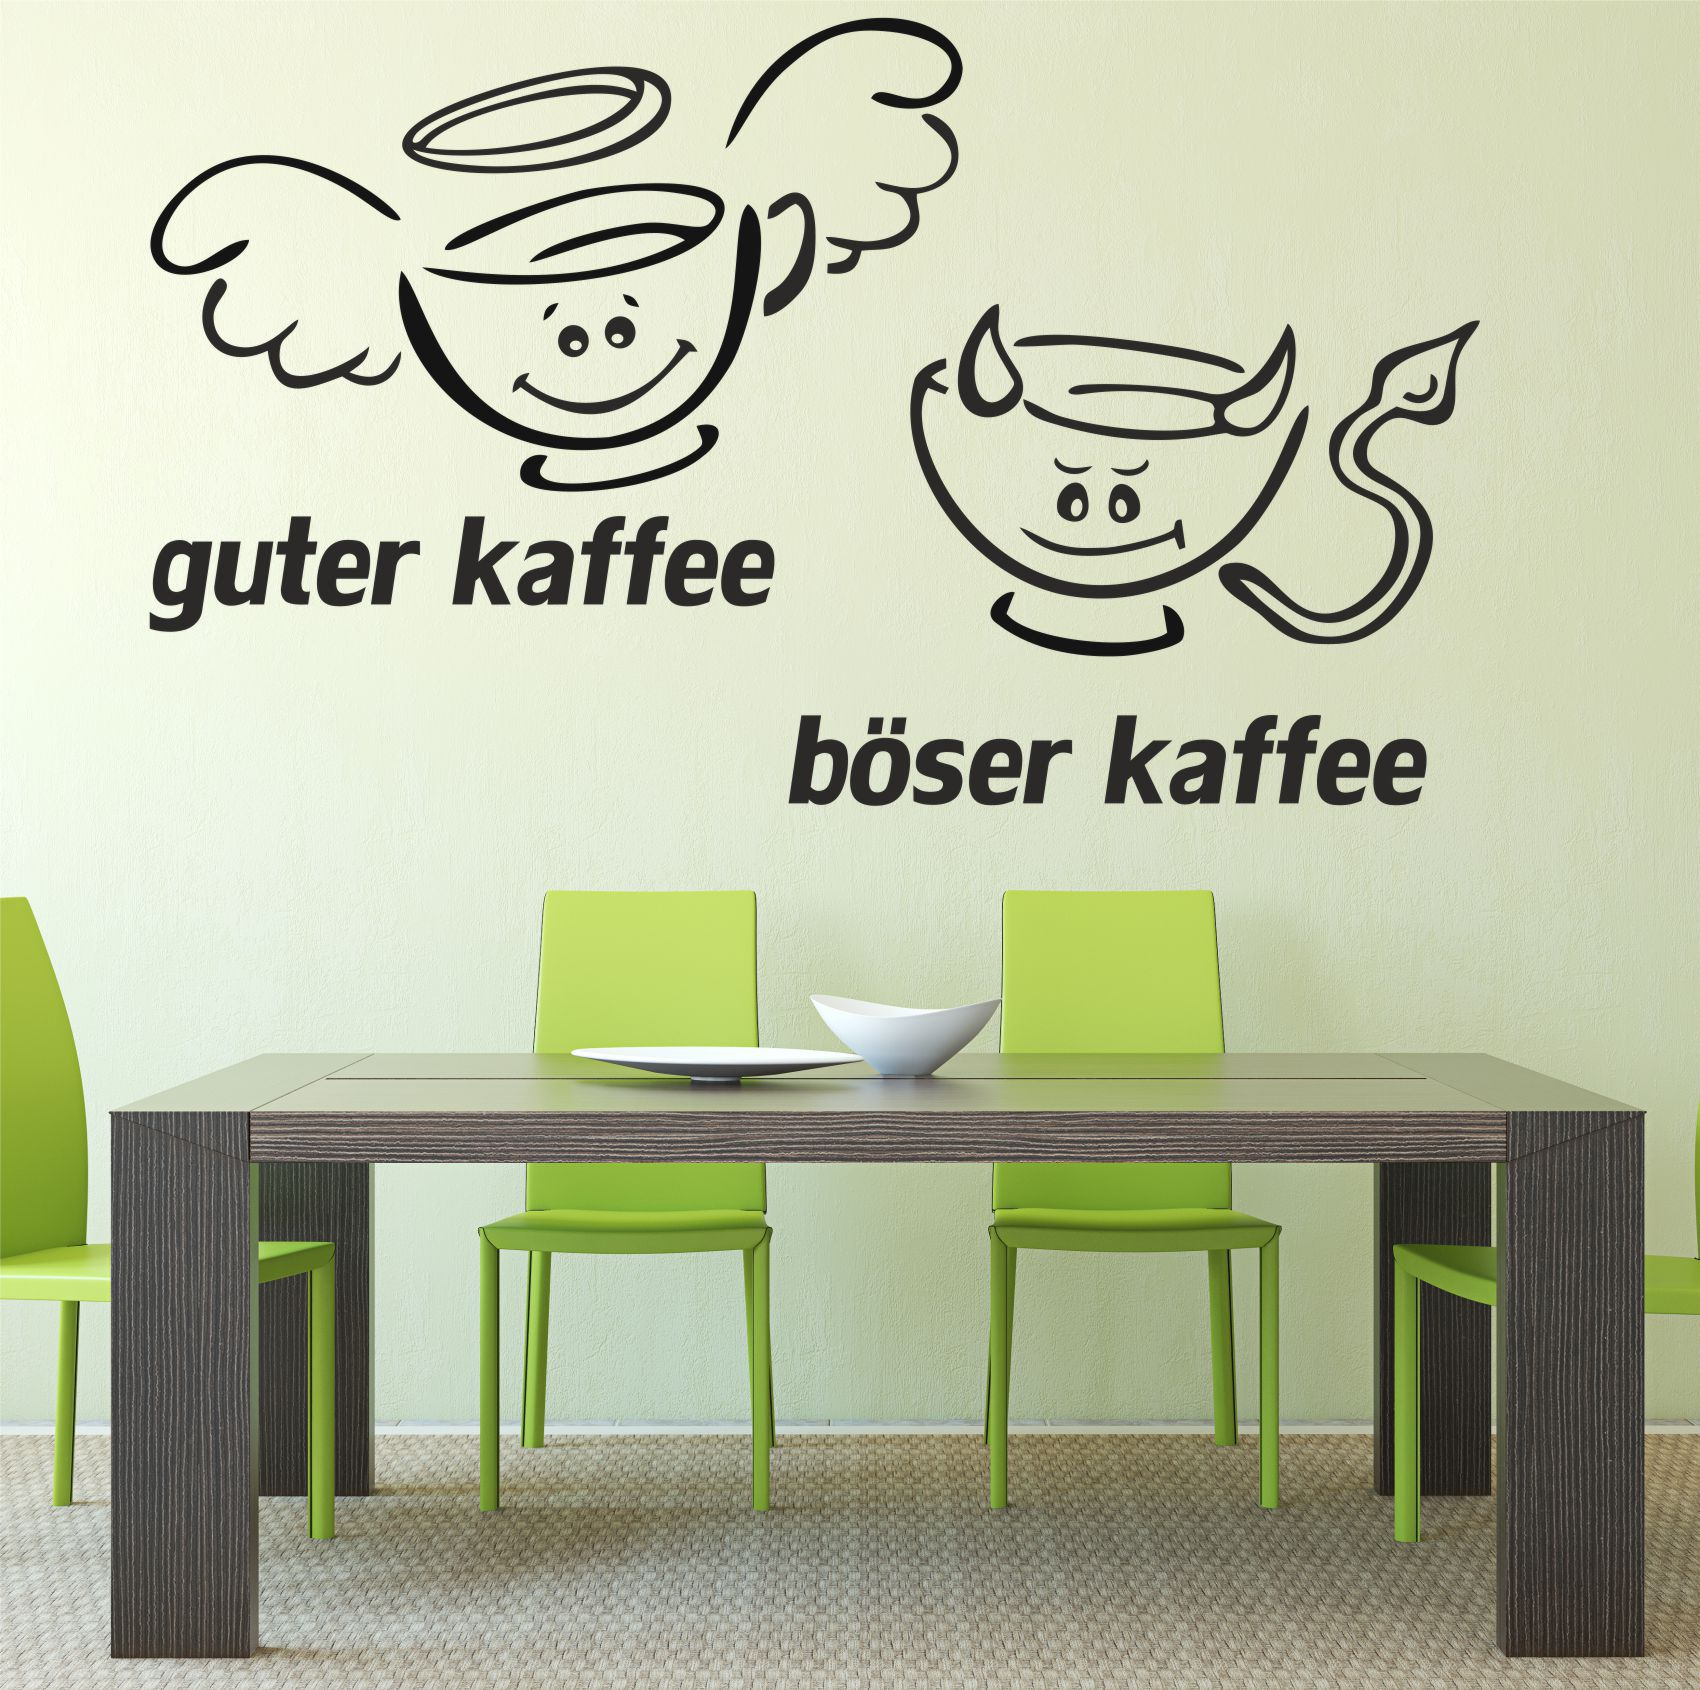 wandtattoo aufkleber guter kaffee b ser kaffee spr che zitate sticker cafe k che ebay. Black Bedroom Furniture Sets. Home Design Ideas